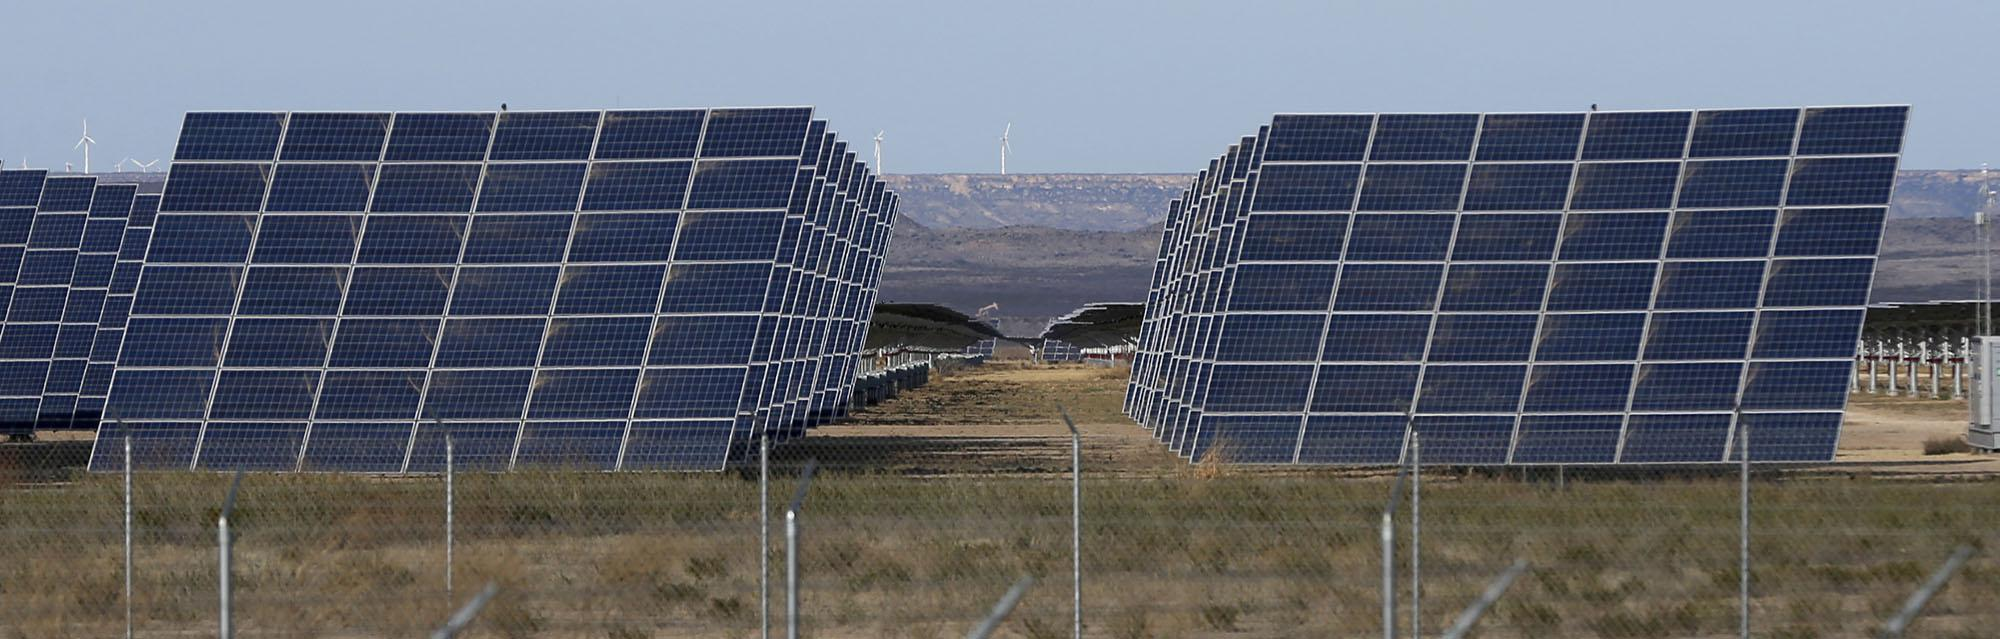 Canadian Company Plans To Build Largest Solar Farm In